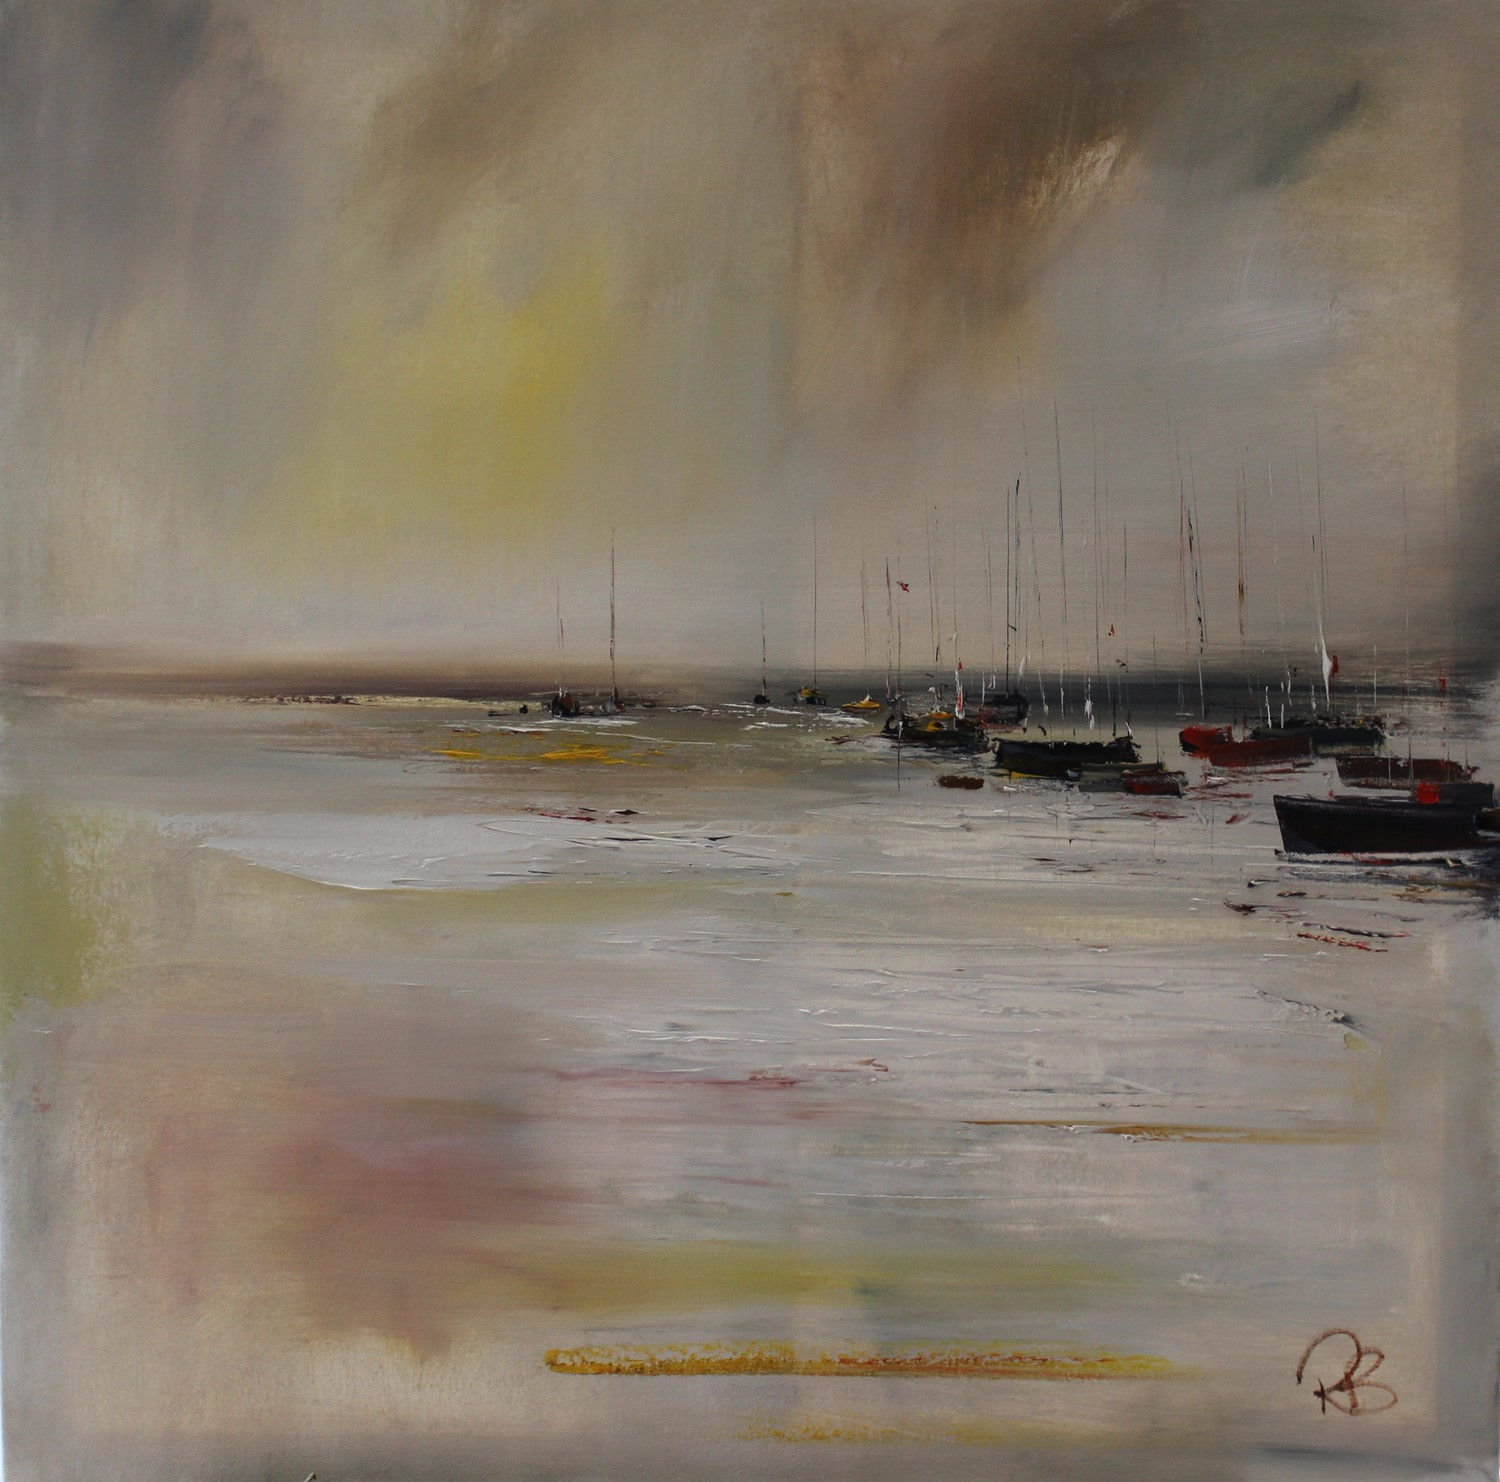 'Mist Hanging over the Harbour' by artist Rosanne Barr